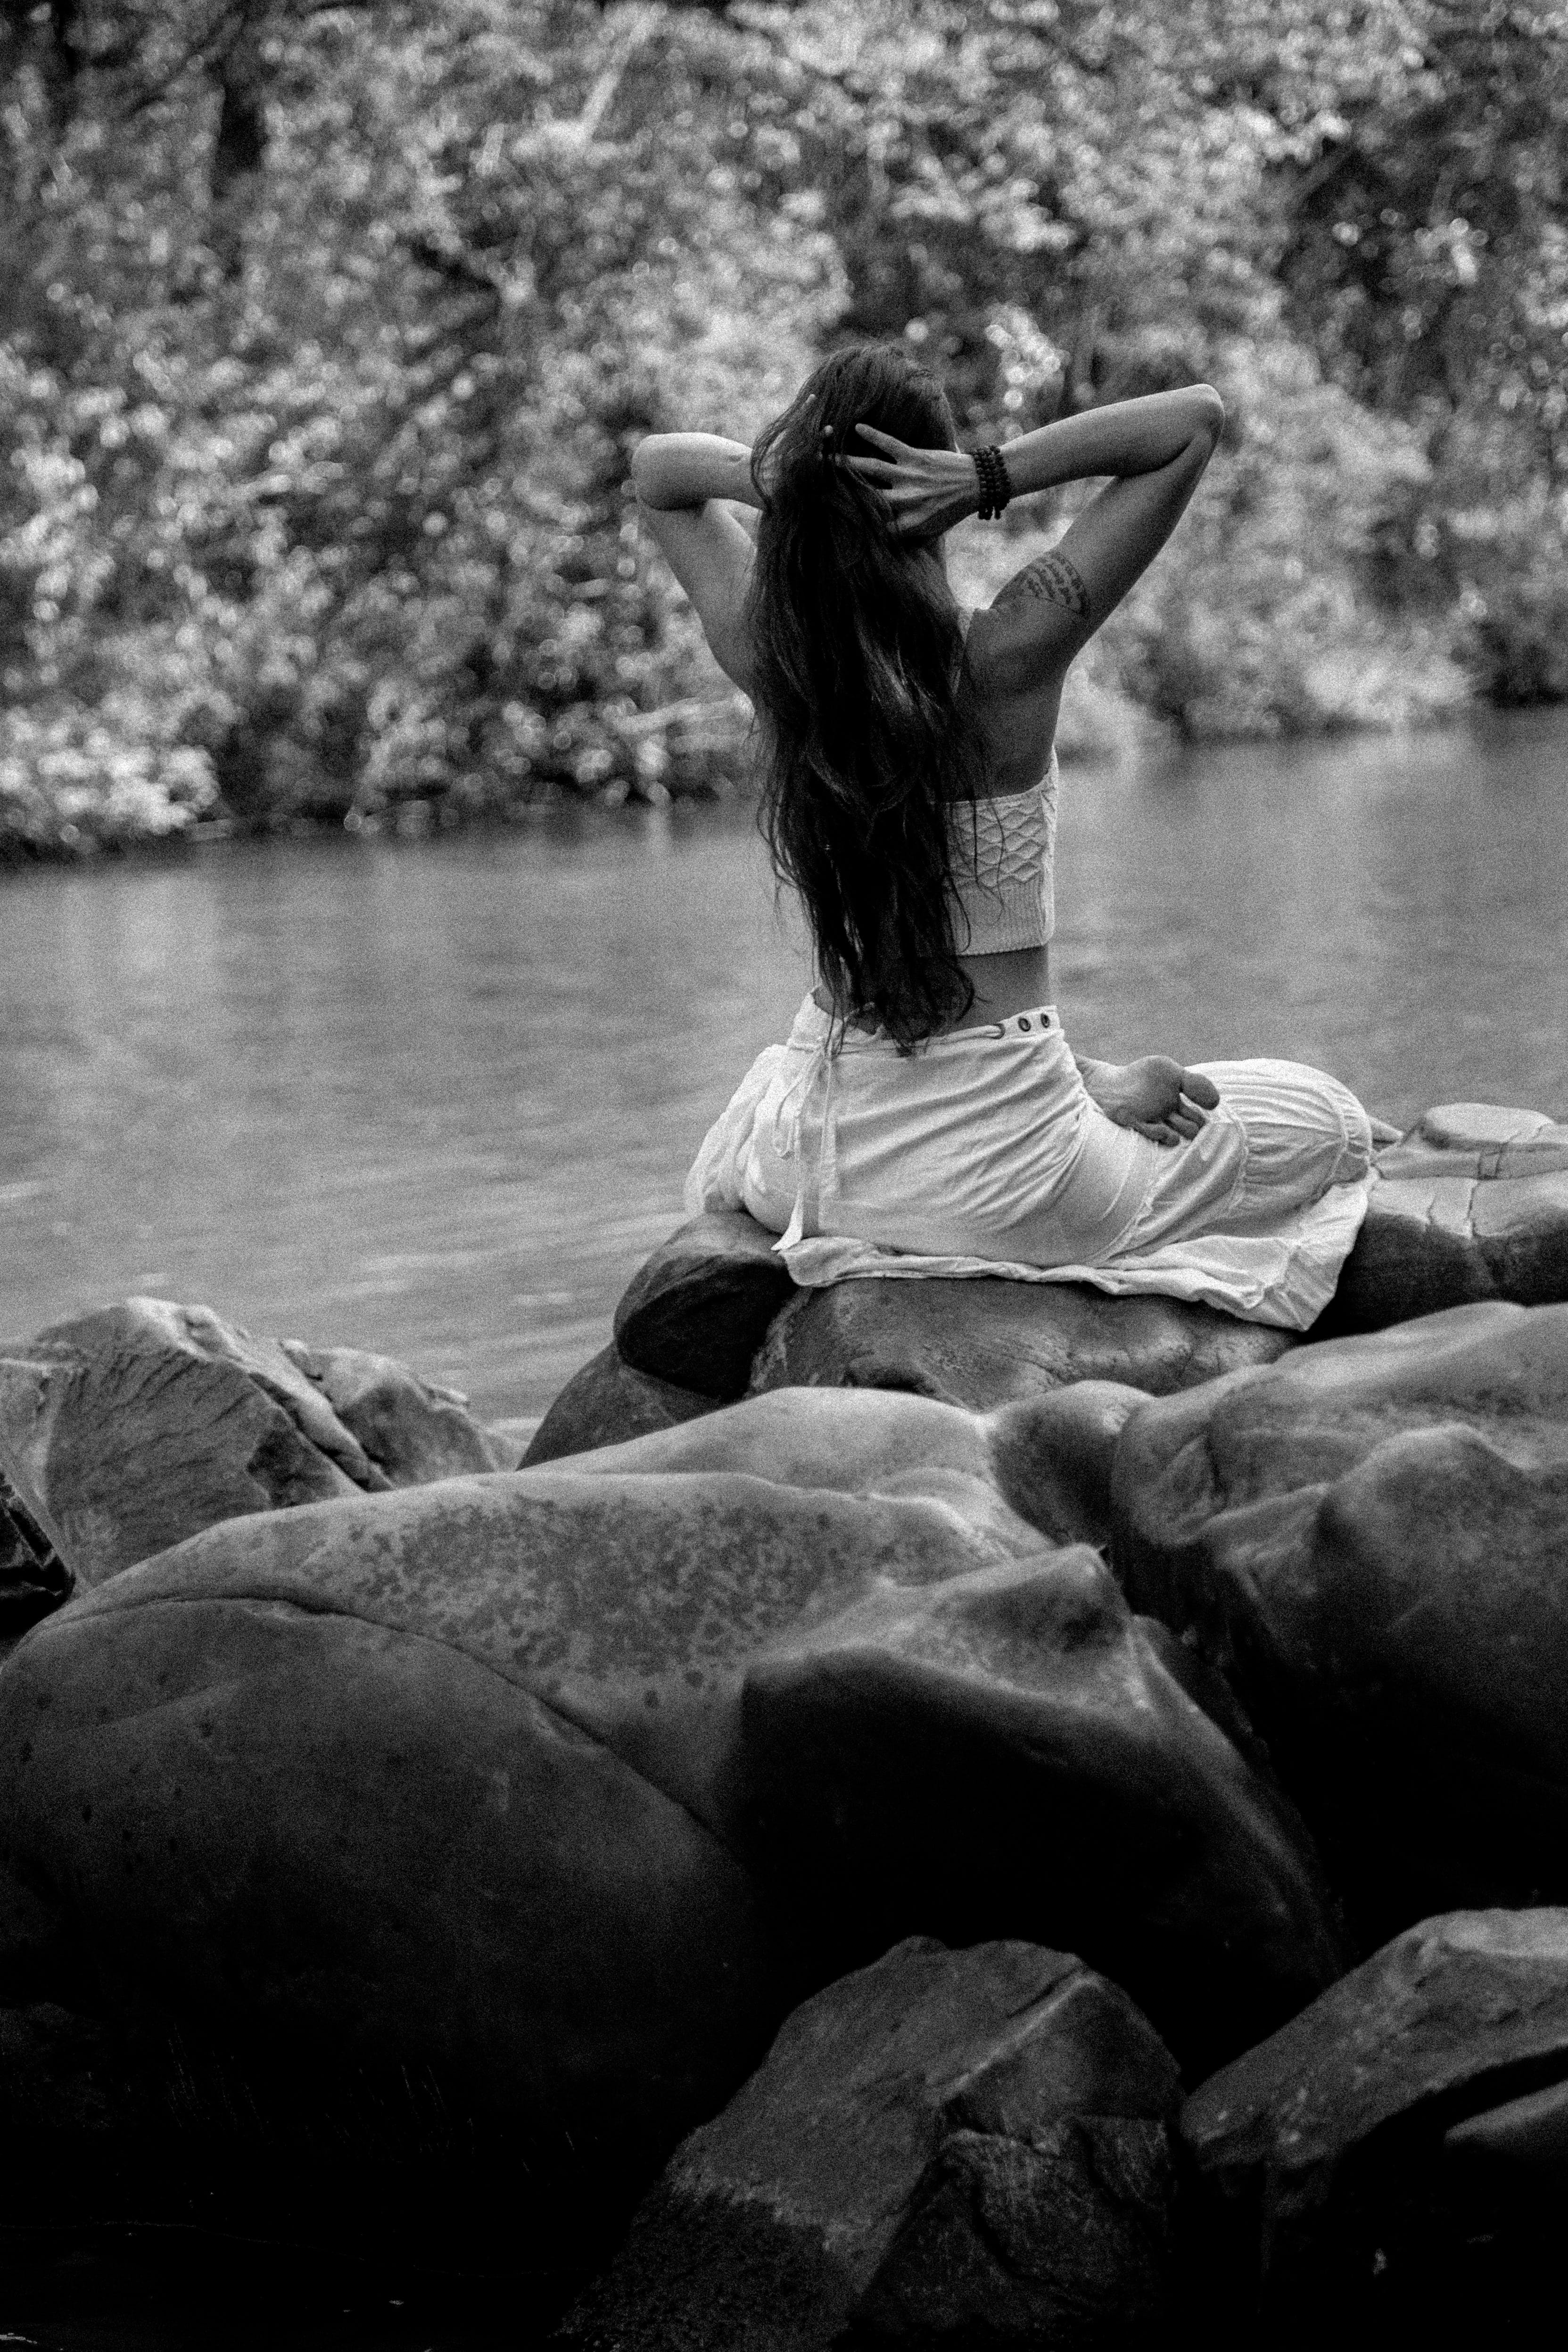 Woman Sitting on Rock Holding Her Head Beside Body of Water